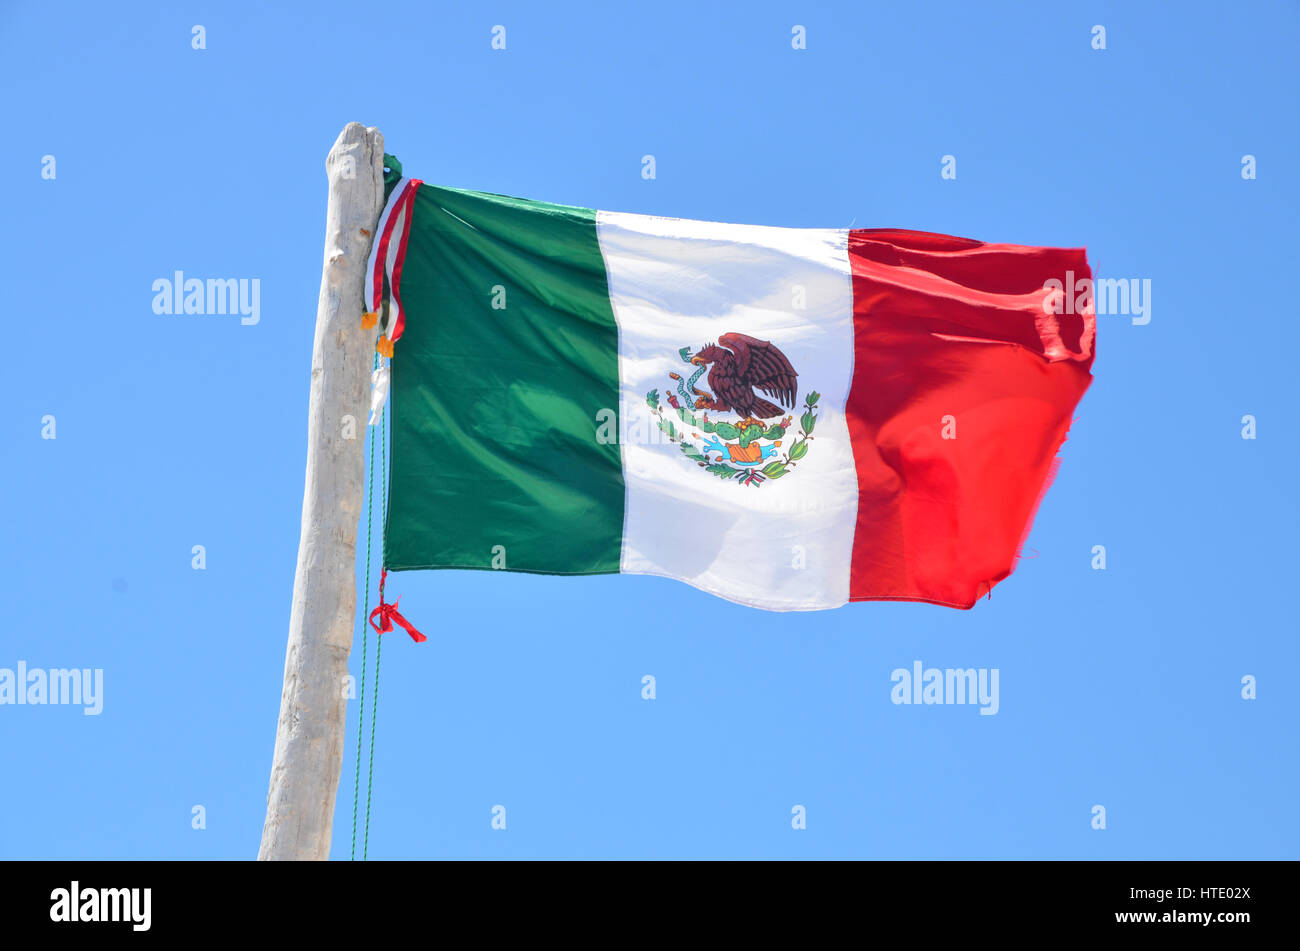 Mexican Flag Flying Against A Blue Sky In Tulum Mexico Stock Photo